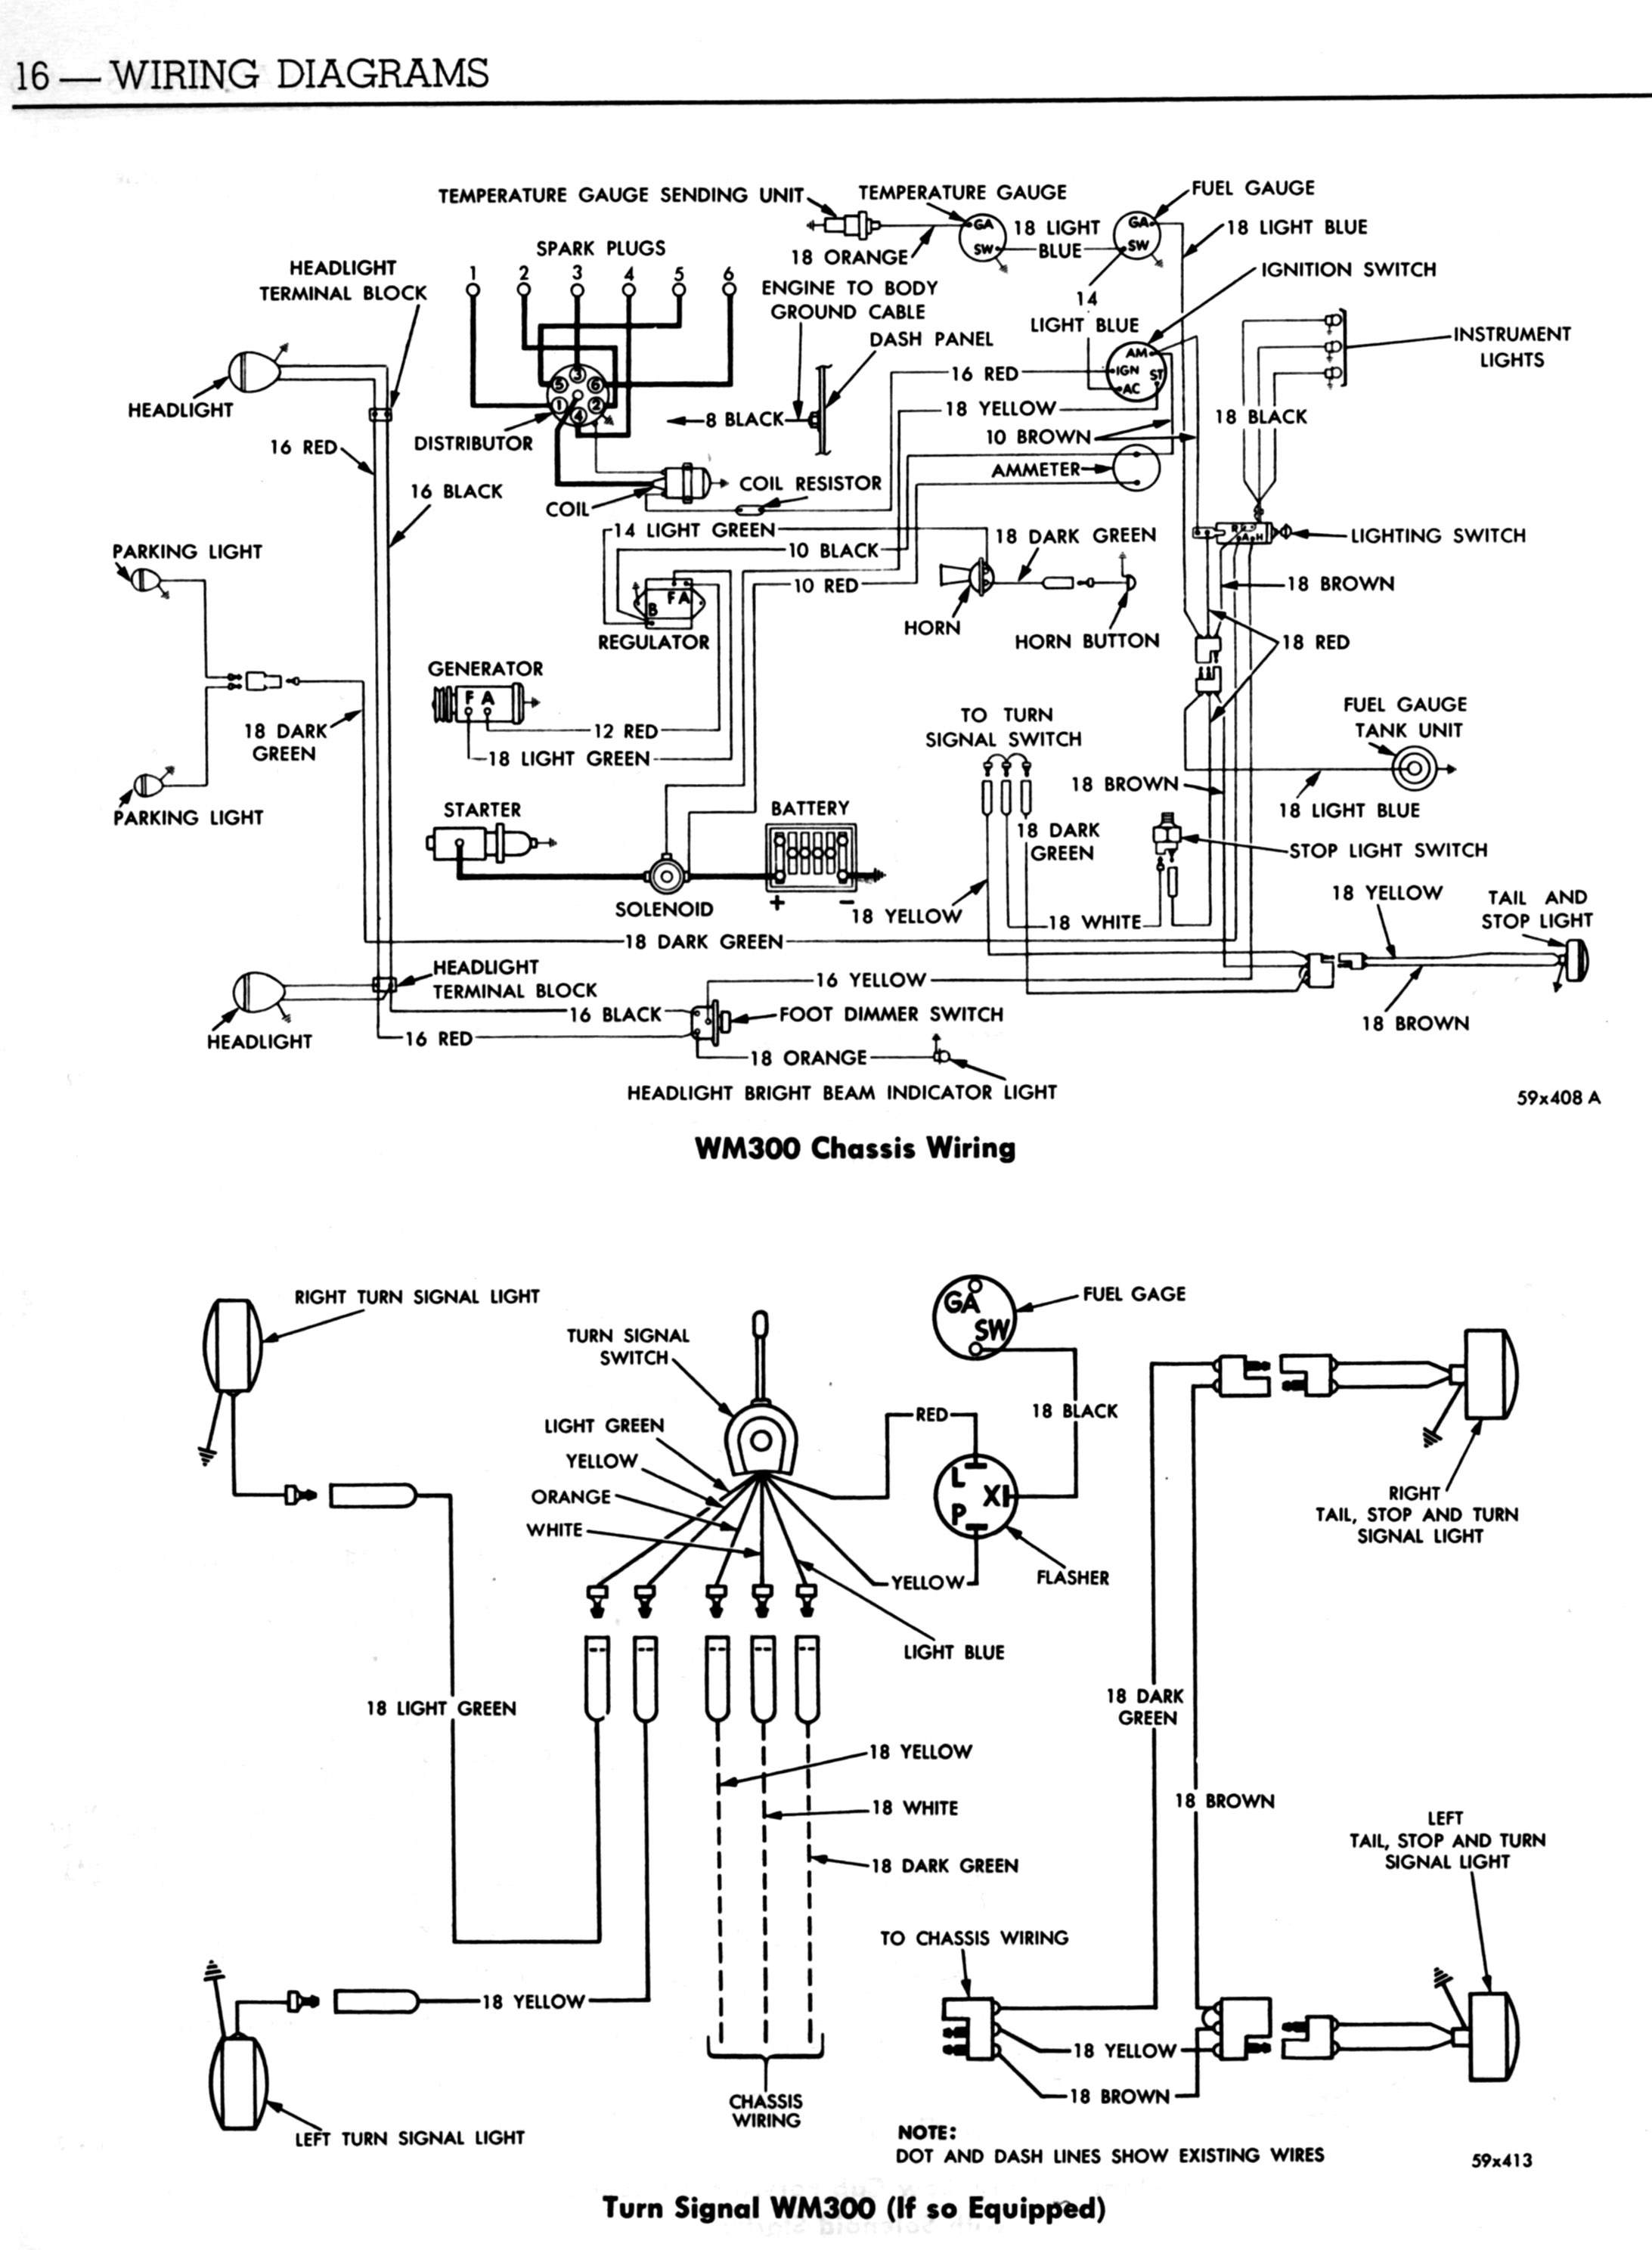 Distributor Cap And Spark Plug Wire Diagram Power Wagon Advertiser Wiring A This Should Help